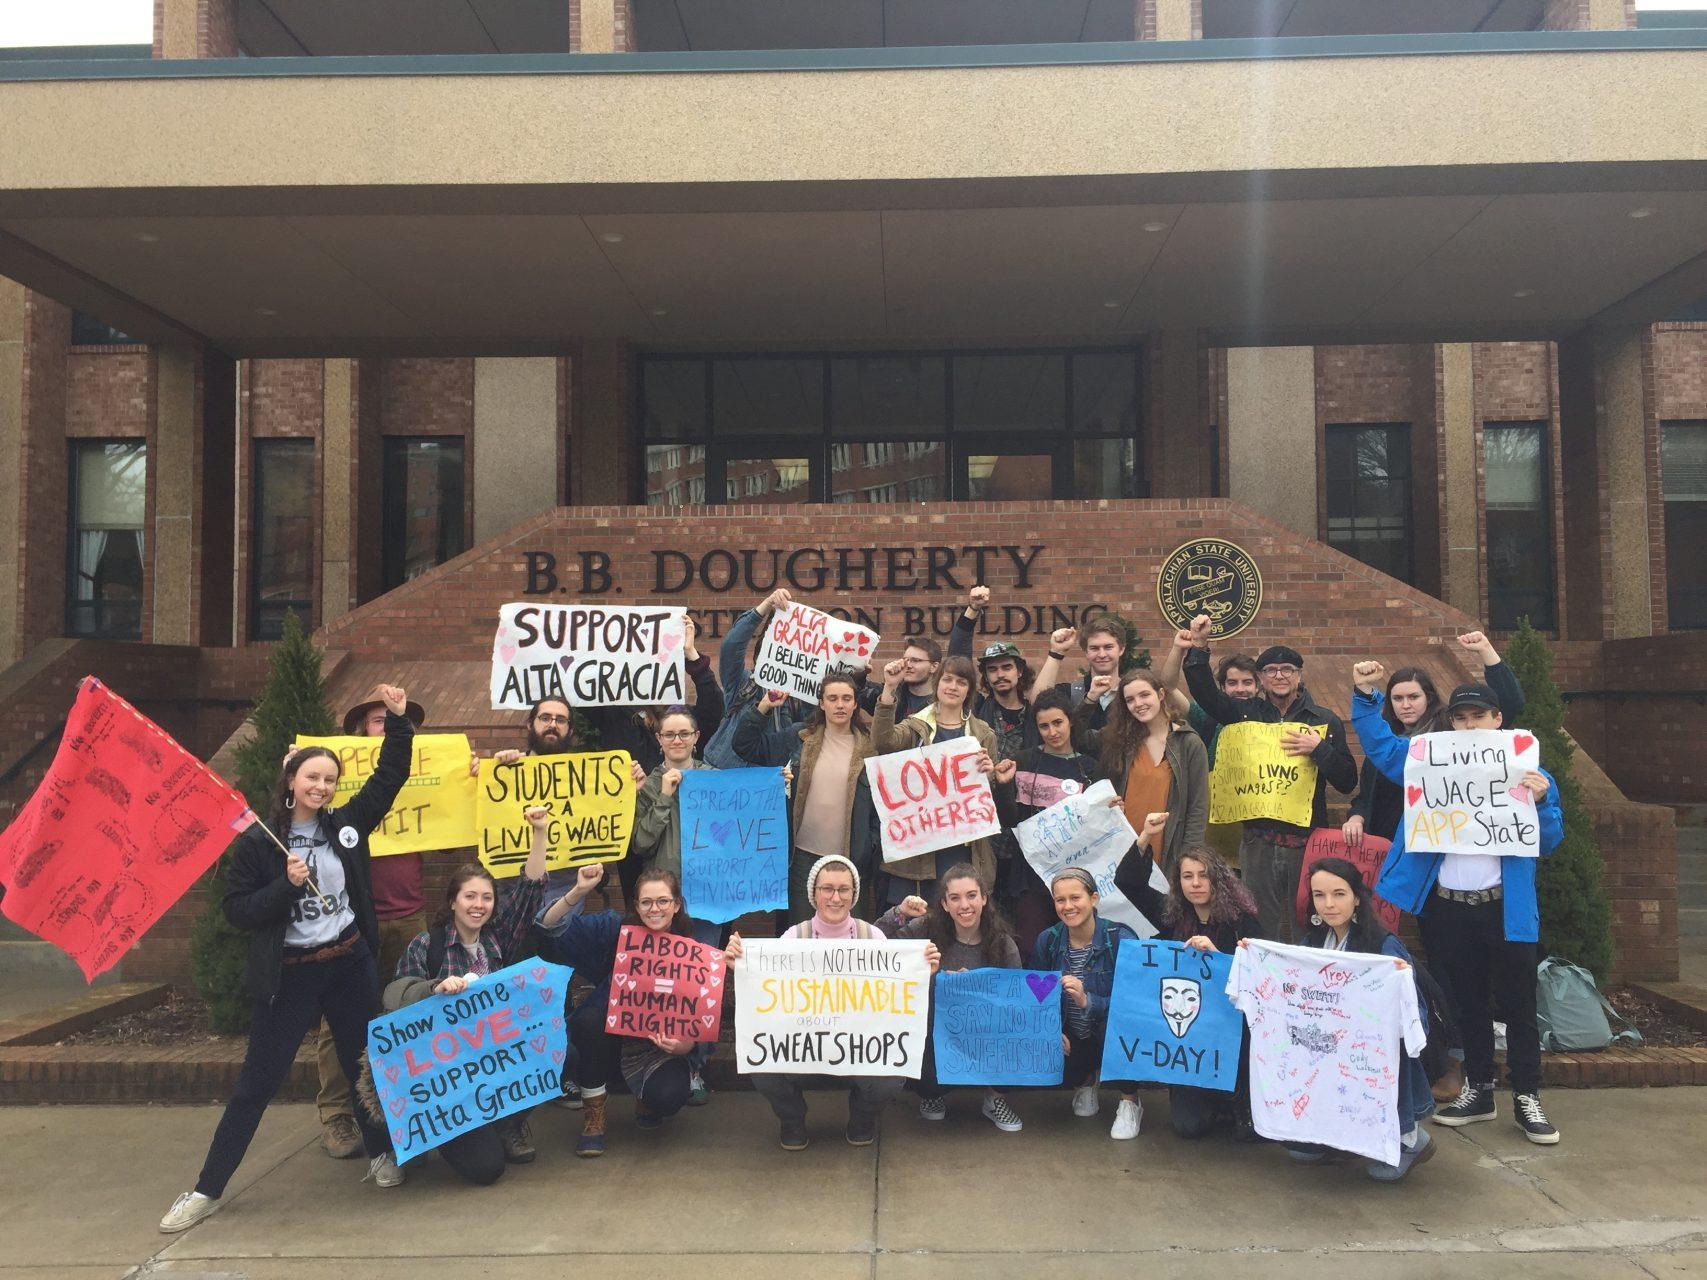 united students against sweatshops promotes living wage clothing in the bookstore the appalachian online